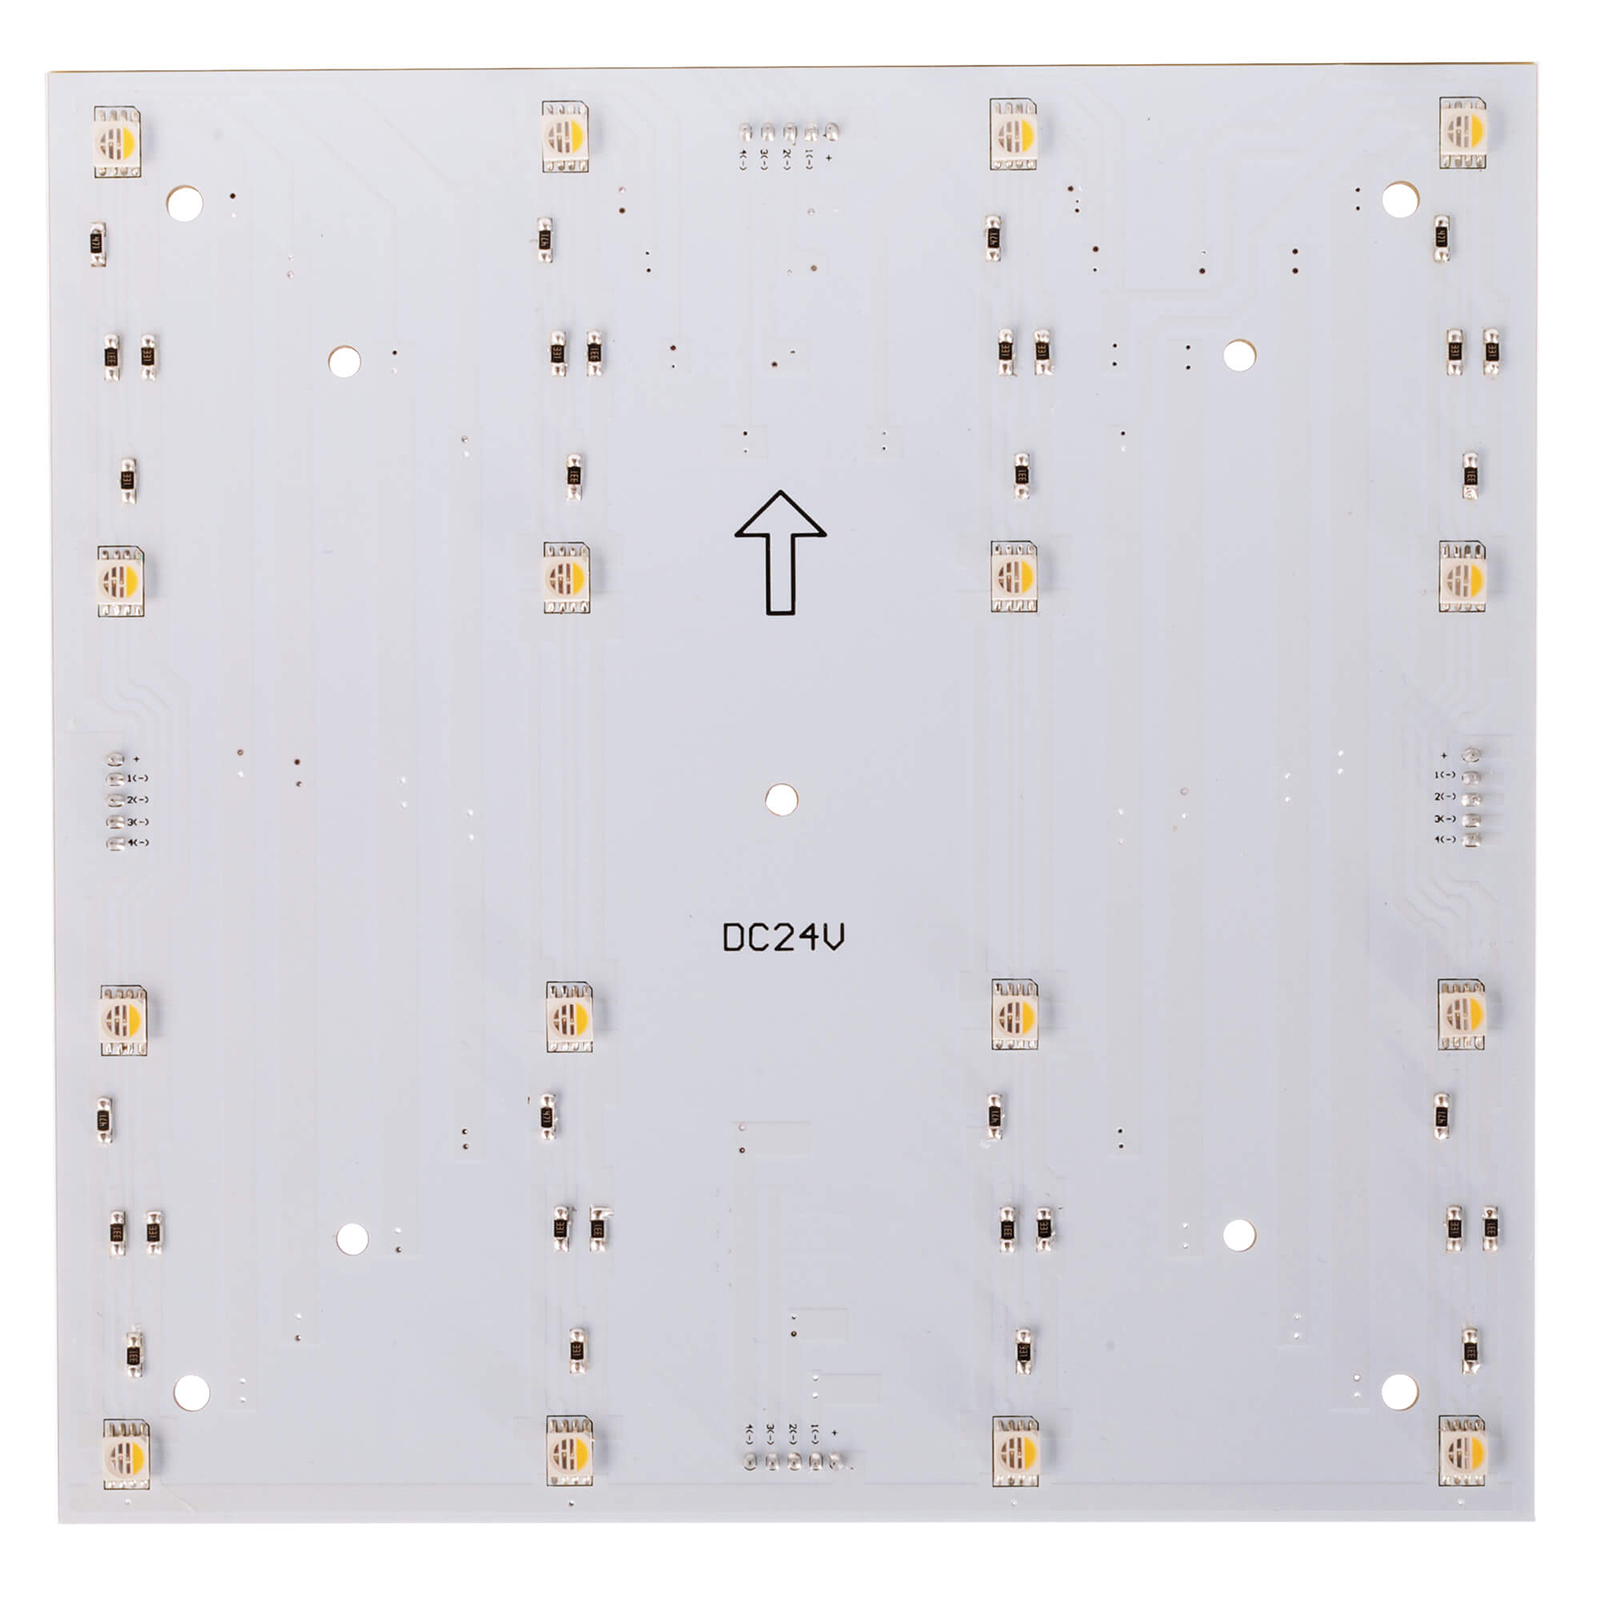 Plate modular LED 7W 24V RGB 3000K dimmable light colored tables signs